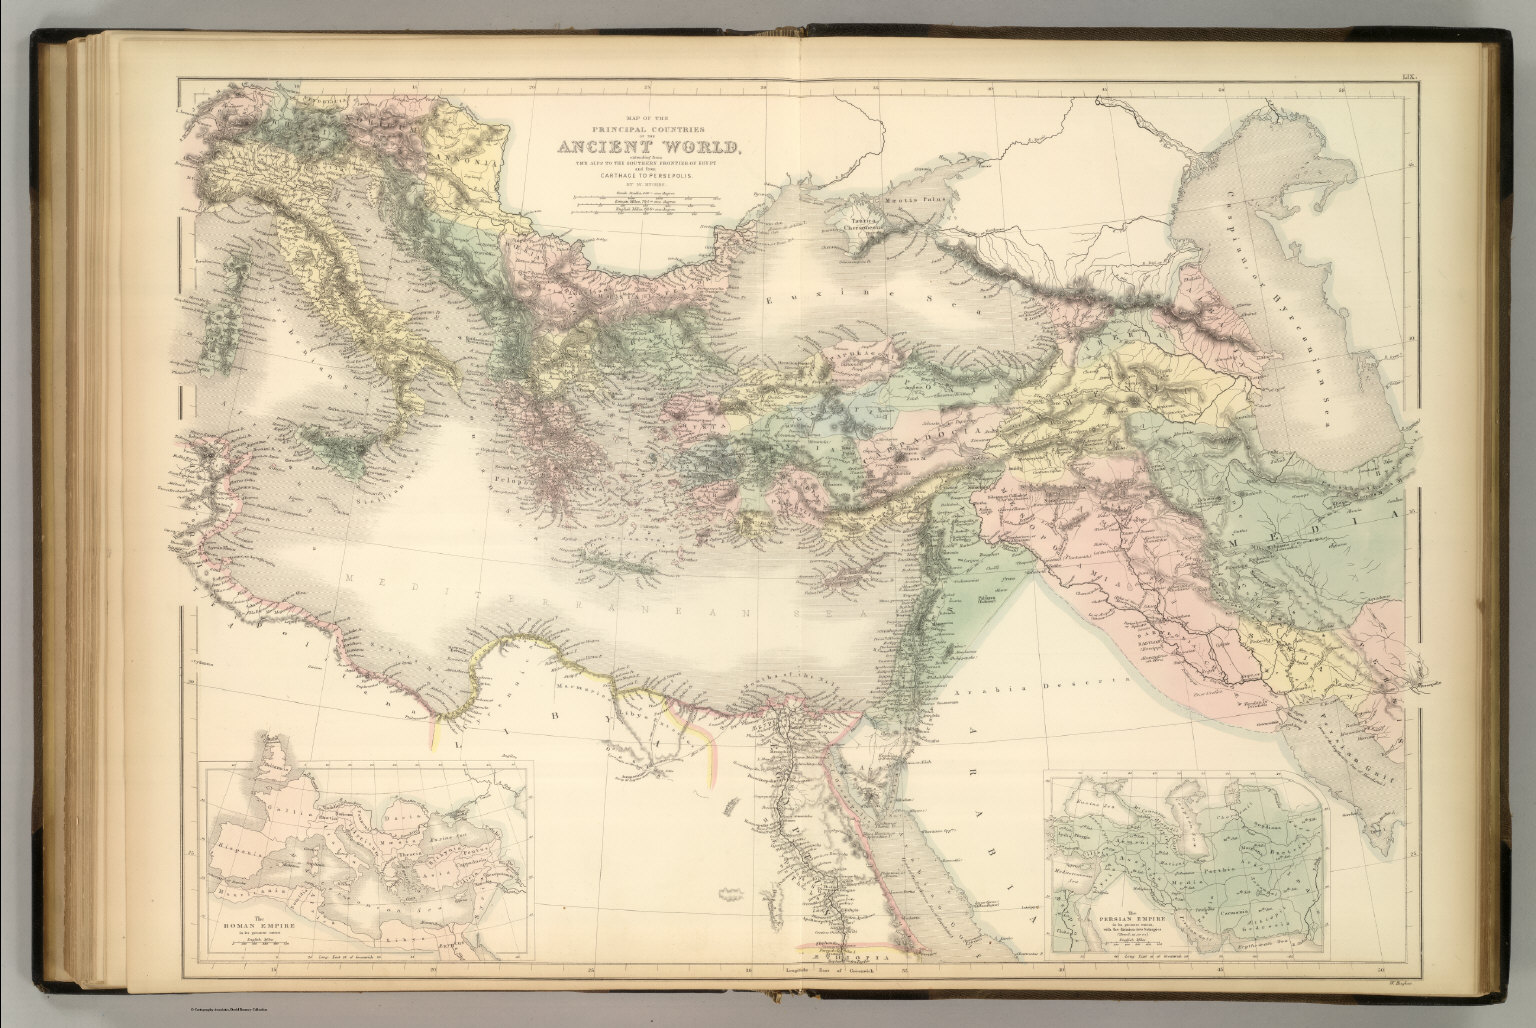 Principal Countries Of The Ancient World David Rumsey Historical